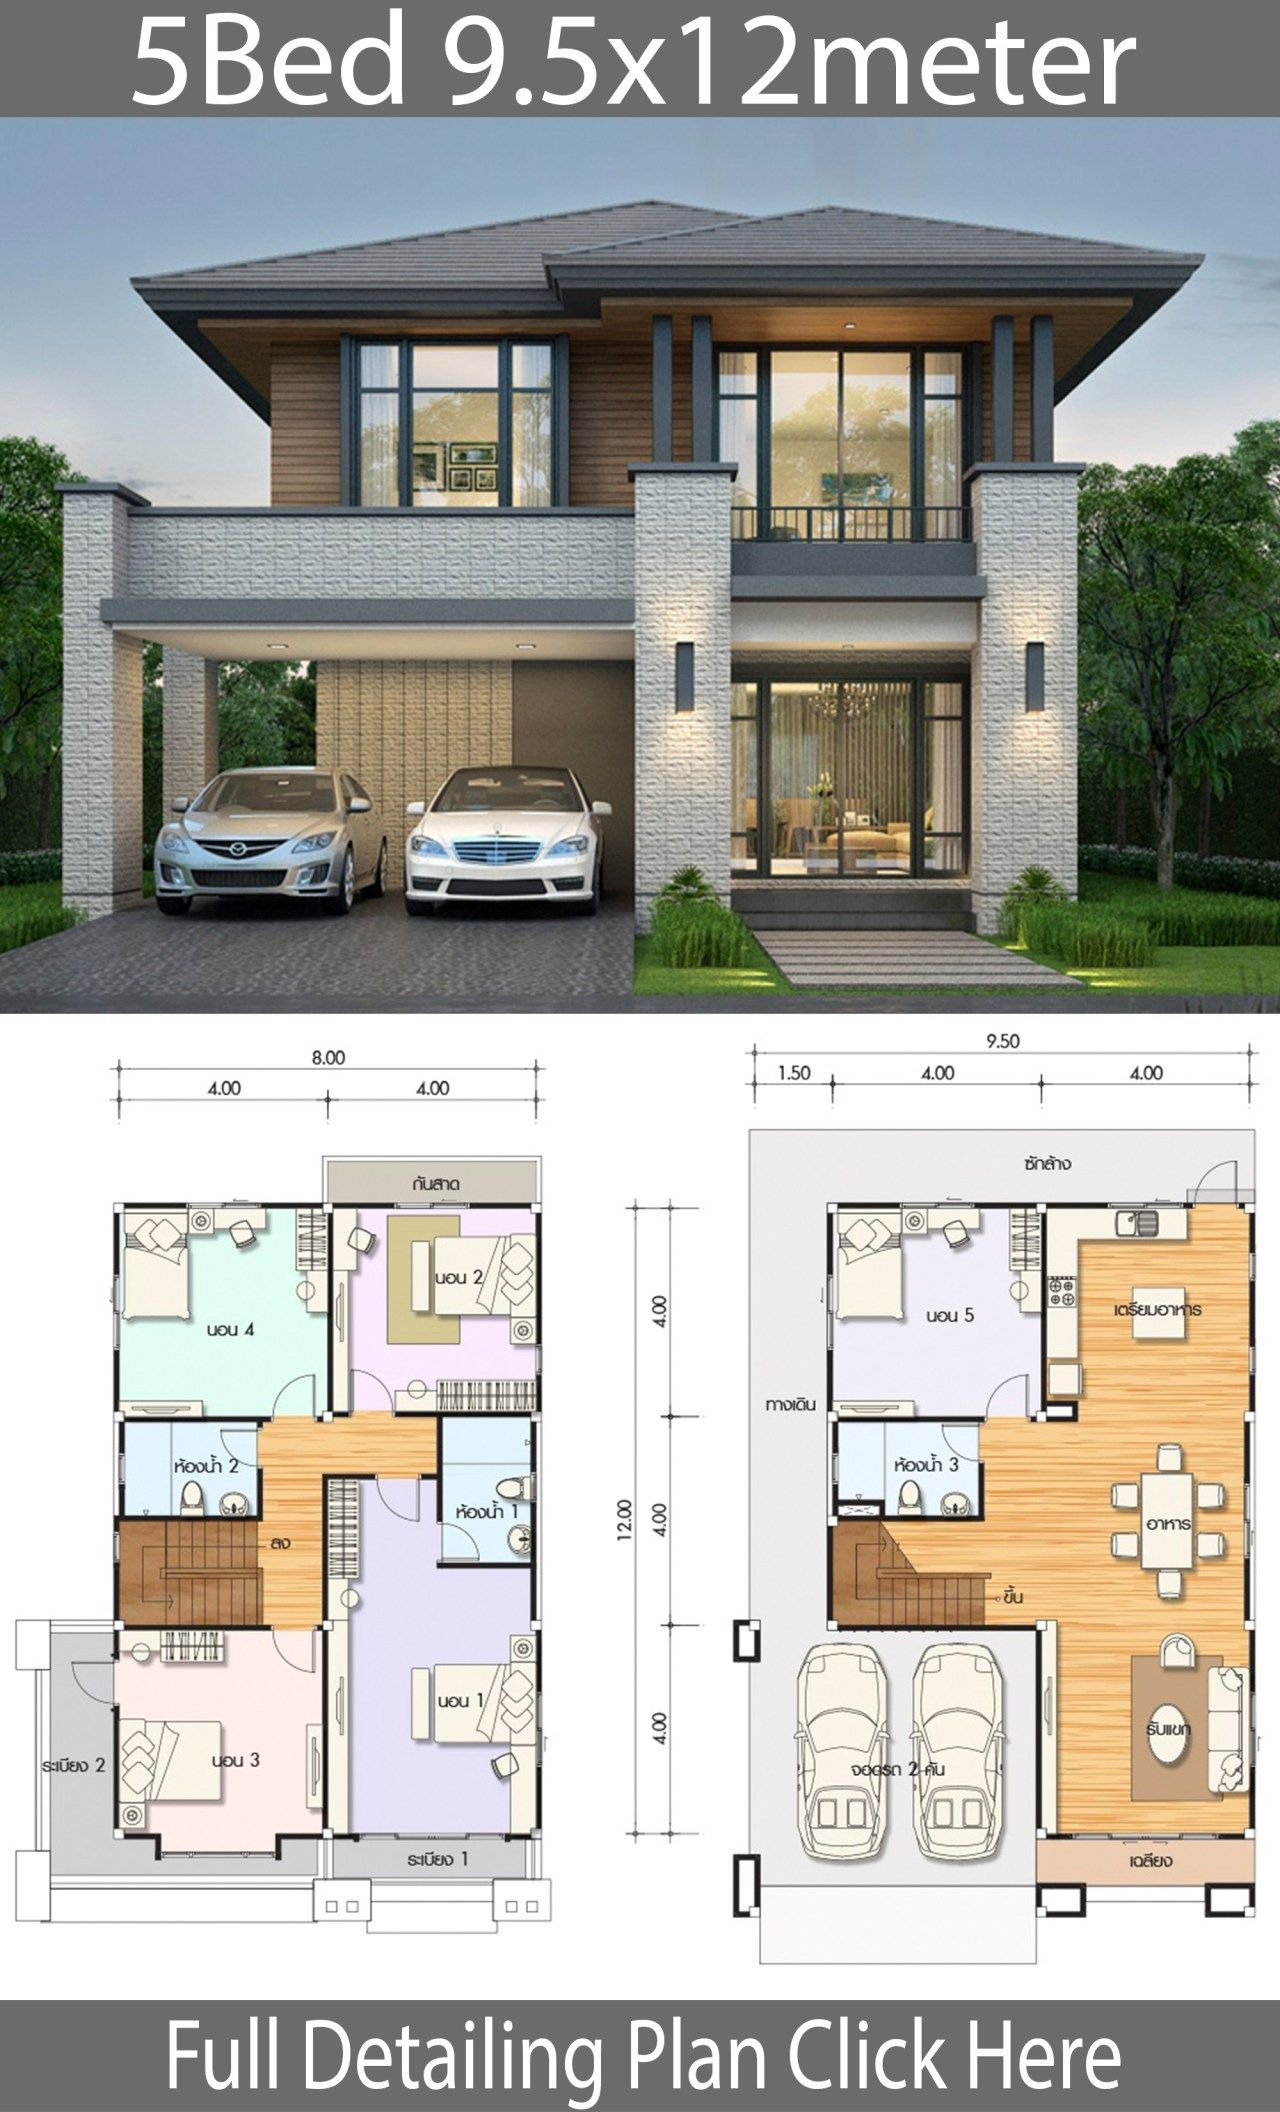 Simple Exterior Design Of House New House Design Plan 9 5x12m with 5 Bedrooms